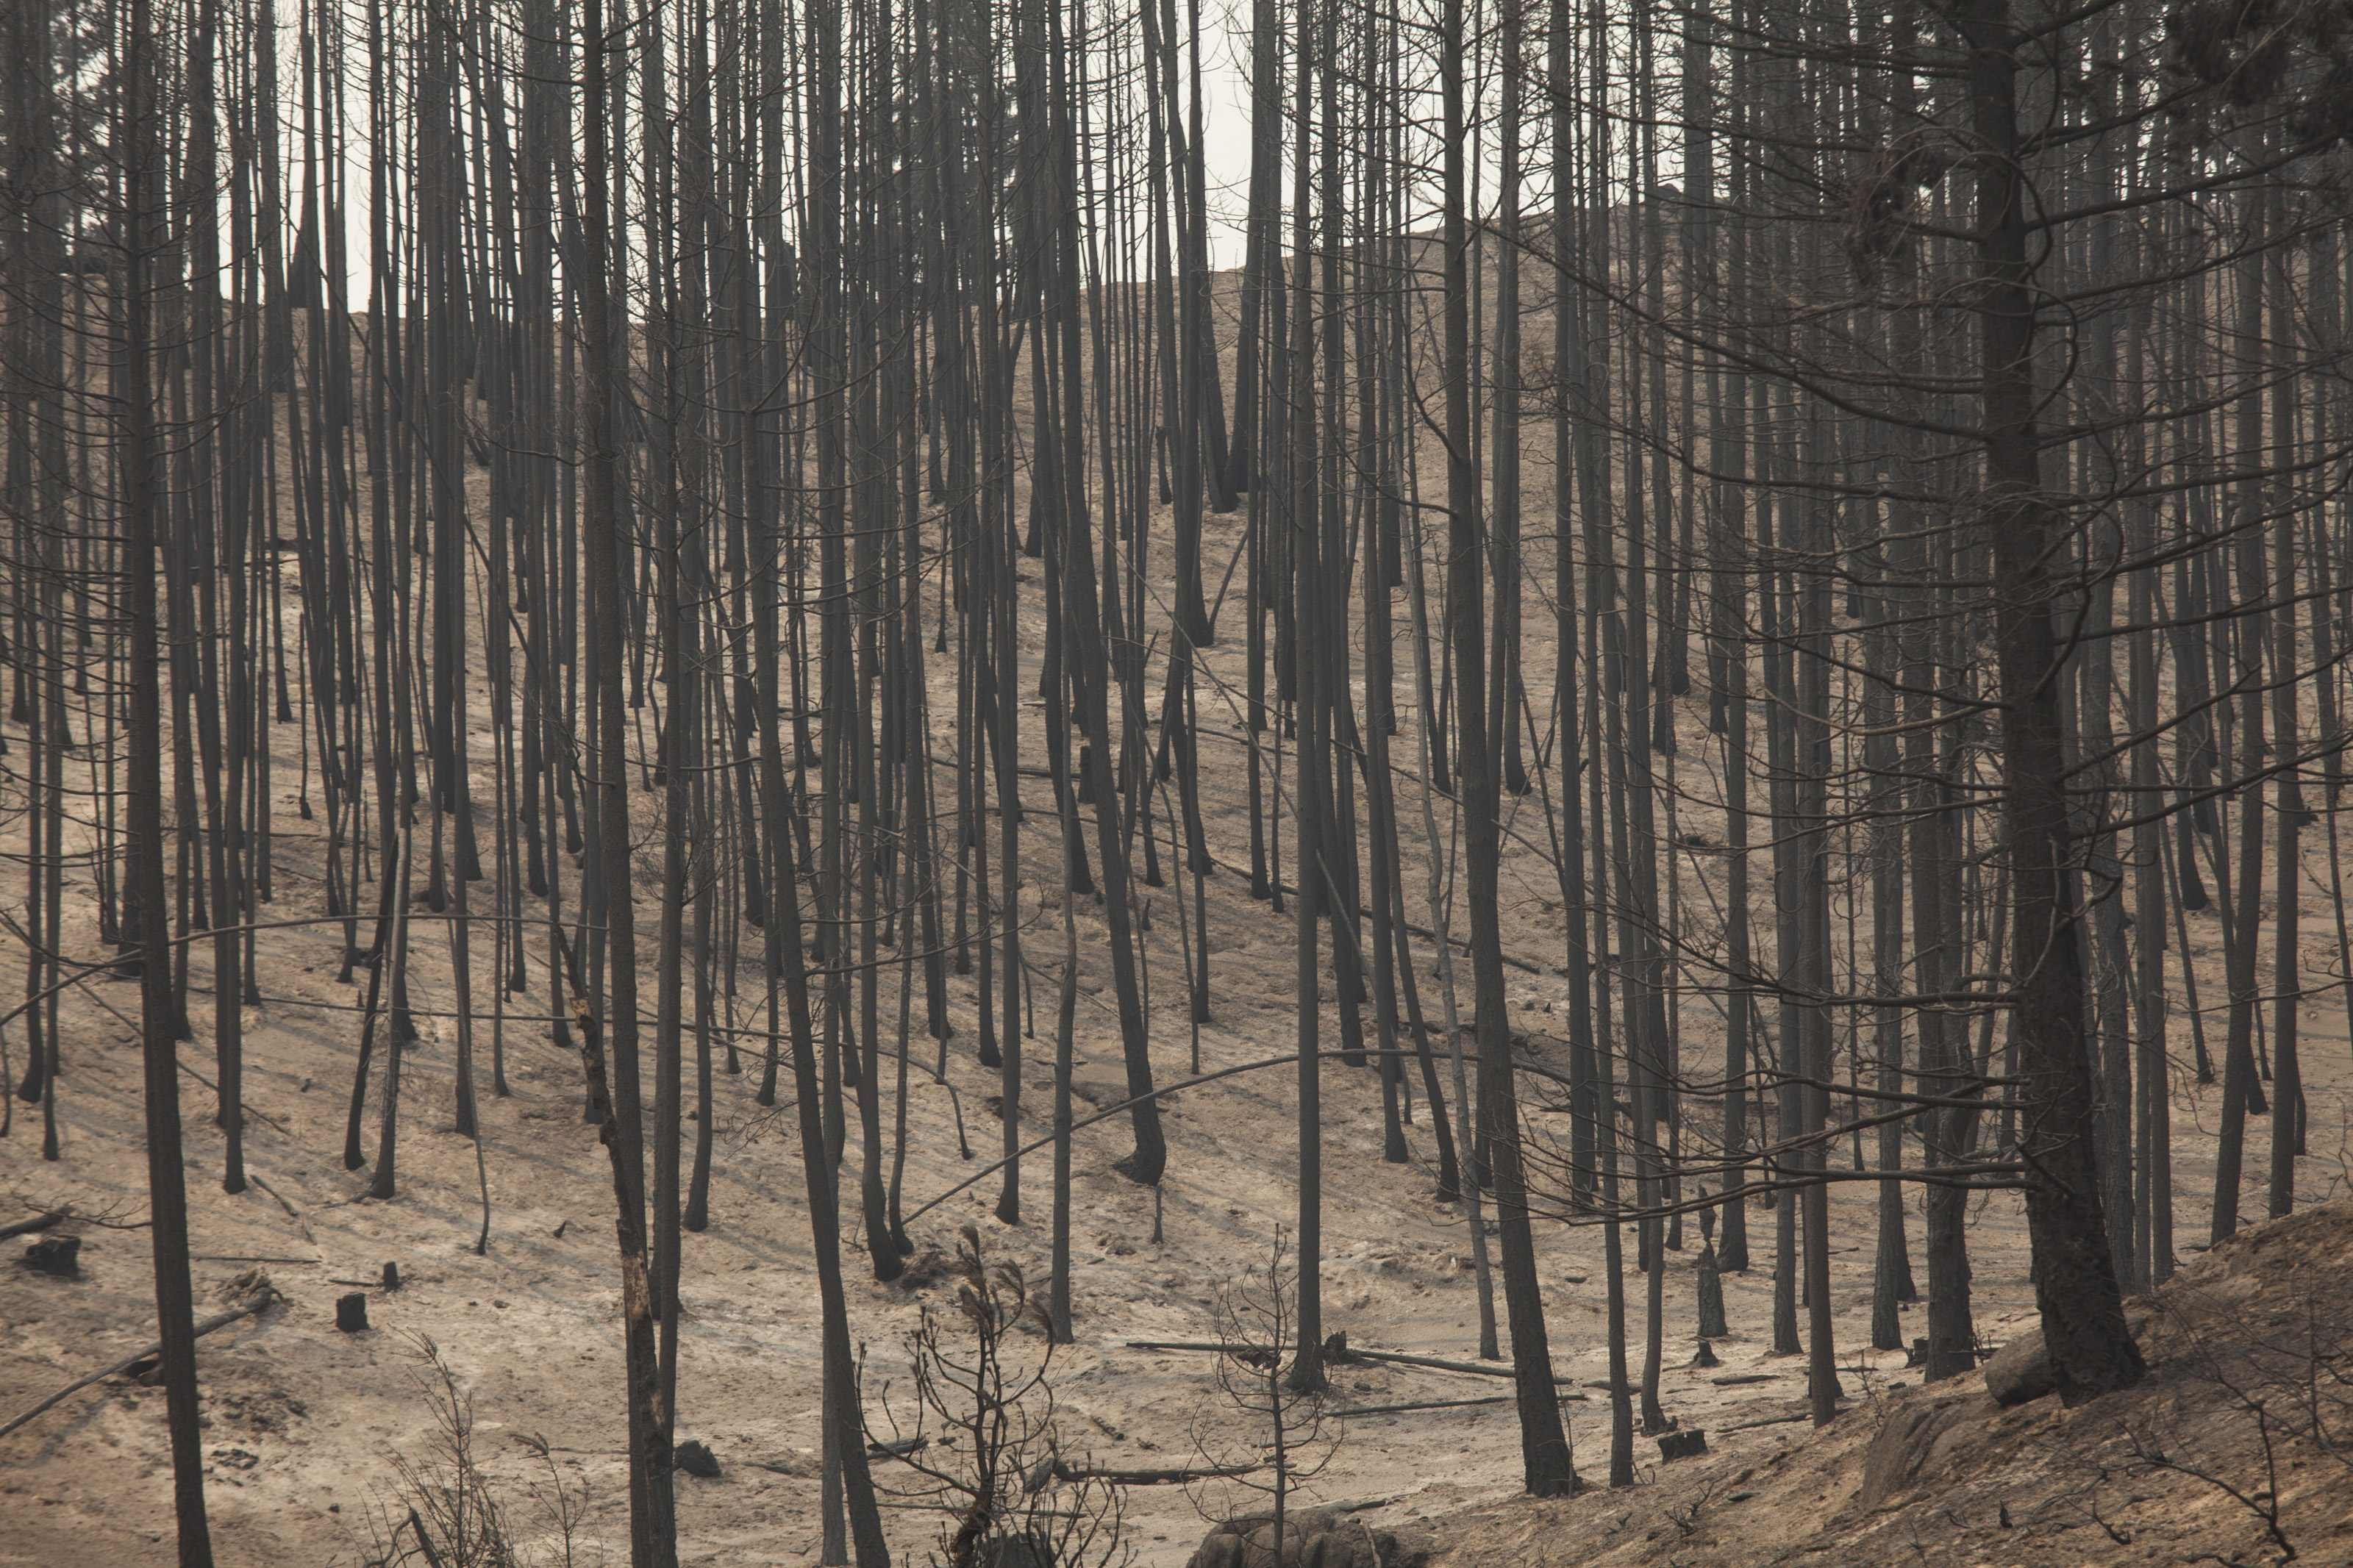 Scorched trees are pictured after being burned by the Carlton Complex Fire near Malott, Washington July 20, 2014.